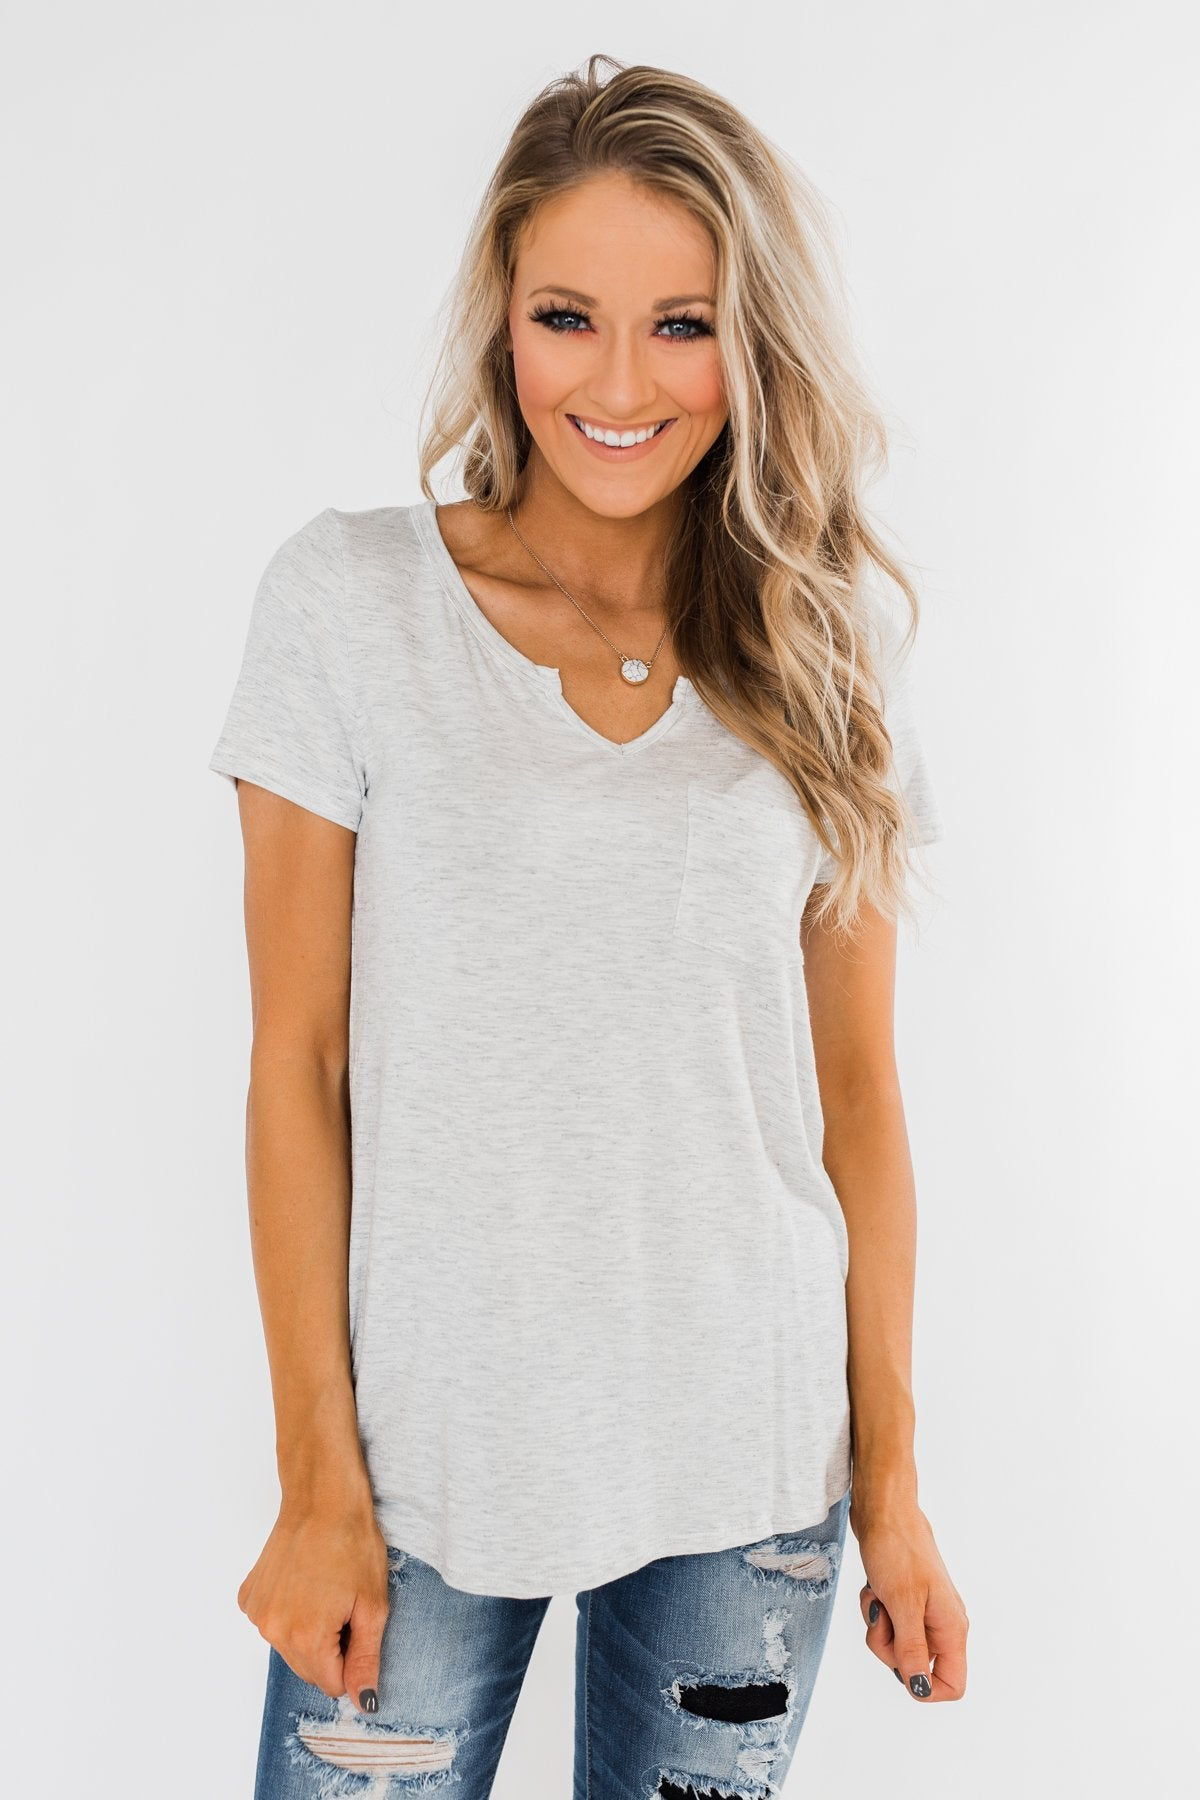 This is Me Notch Pocket Top- Light Heather Grey